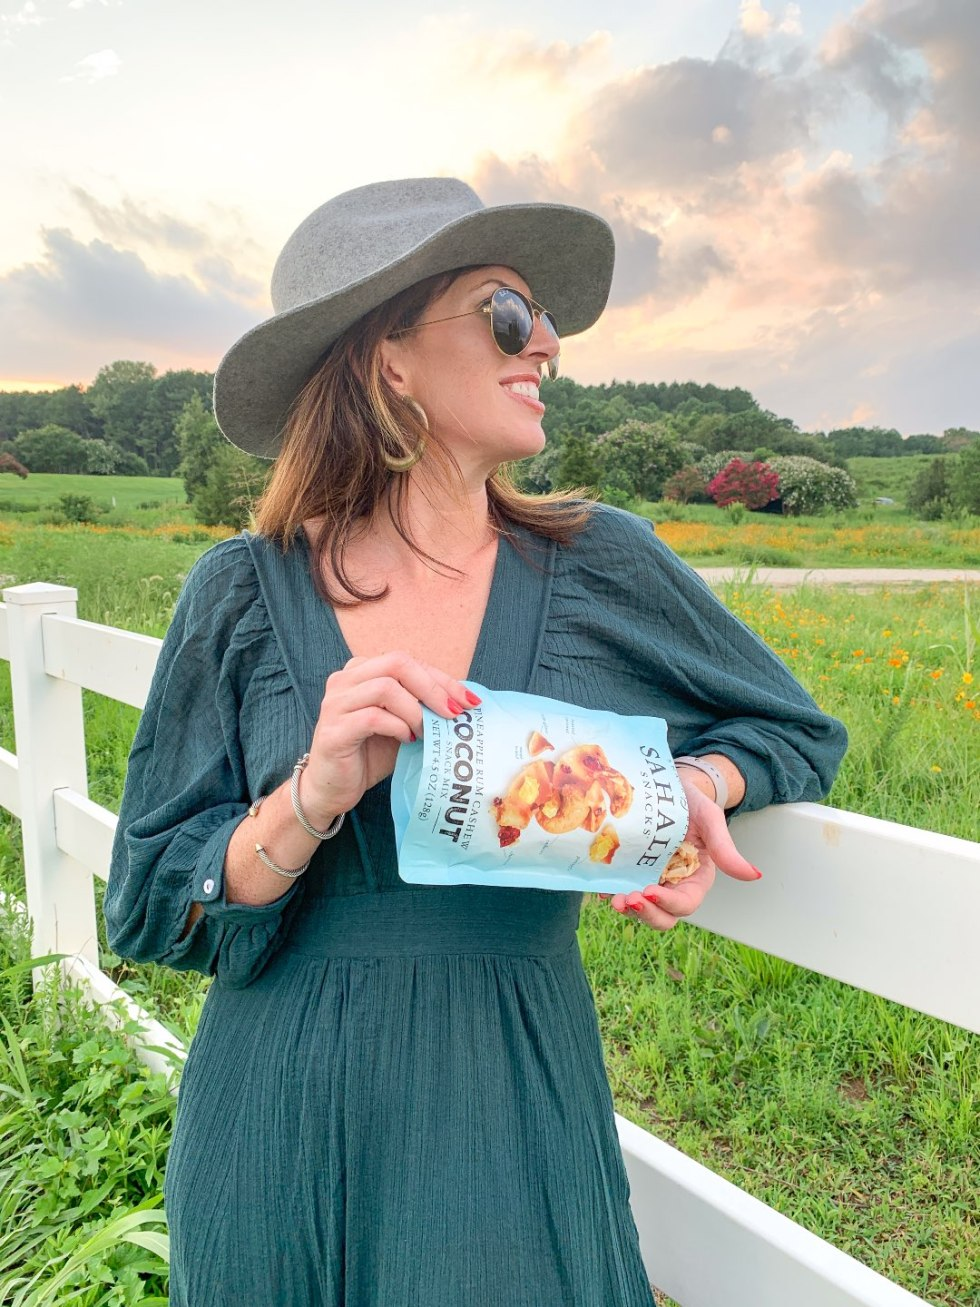 Quick Snack Ideas When You're On the Go - I'm Fixin' To - @mbg0112 | Quick Snack Ideas When You're On the Go by popular NC life and style blogger, I'm Fixin' To: image of a woman standing outside in a field and pouring a bag of Sahale Snacks coconut mix into her hands.